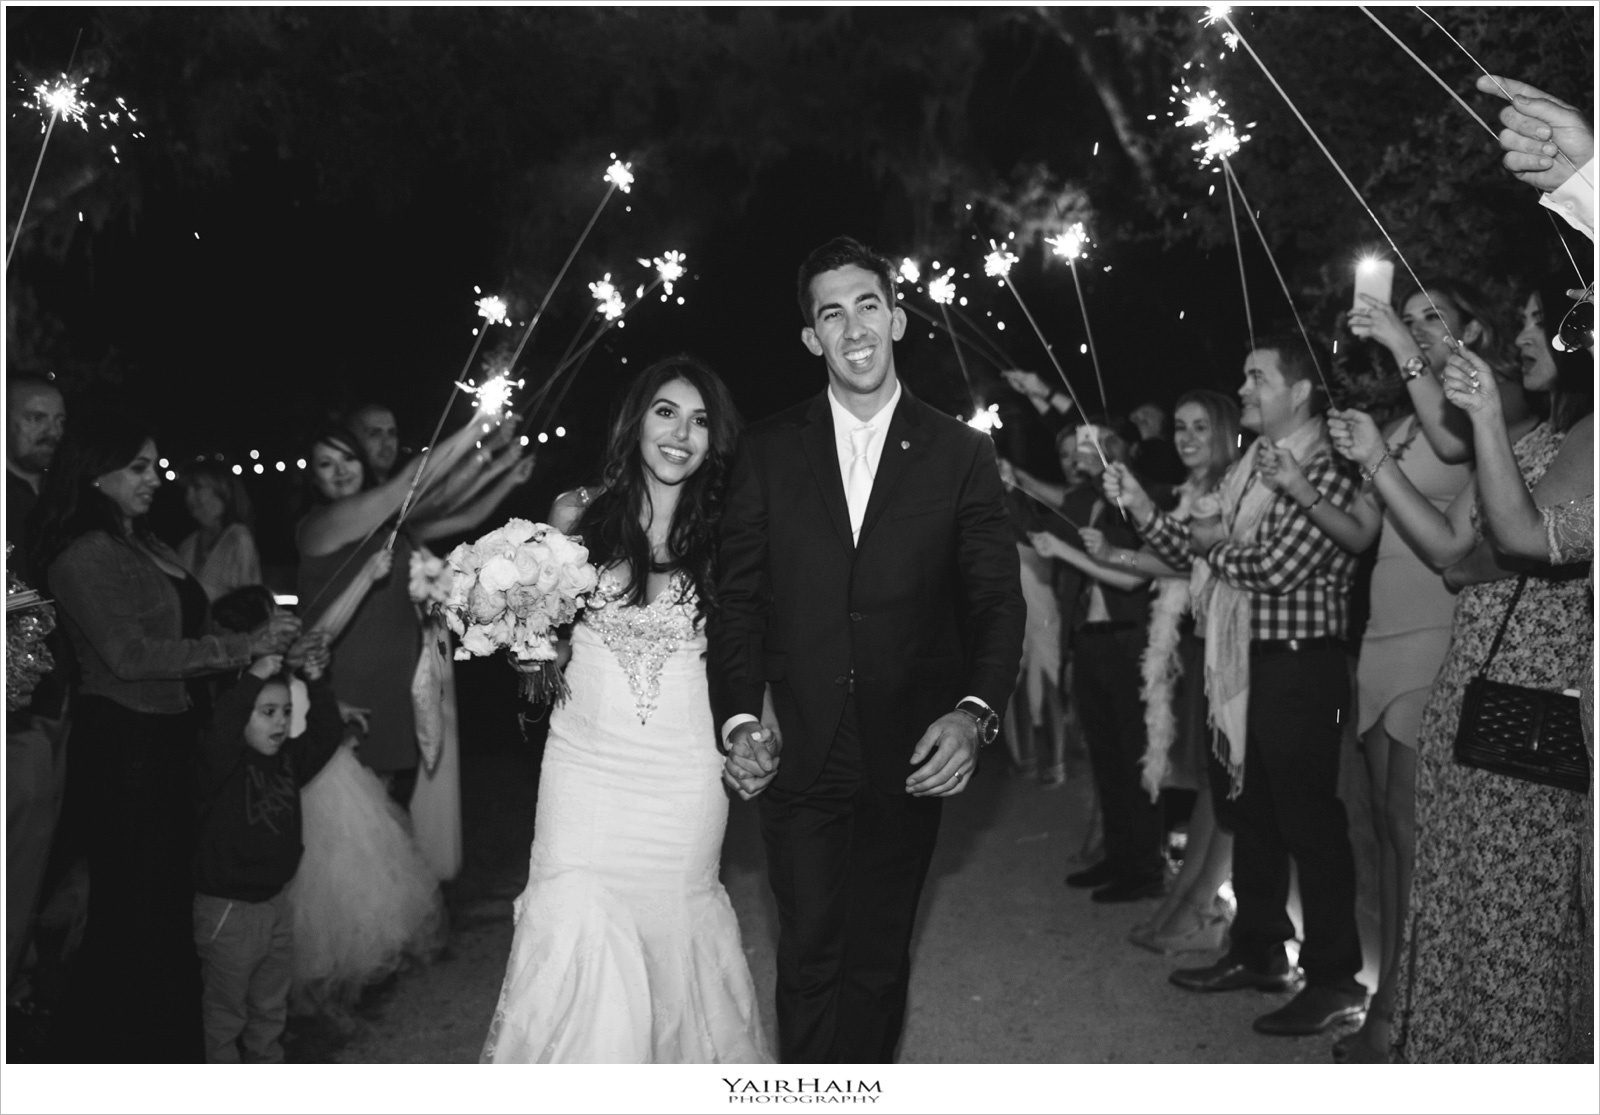 Destination-wedding-photographer-Yair-Haim-54